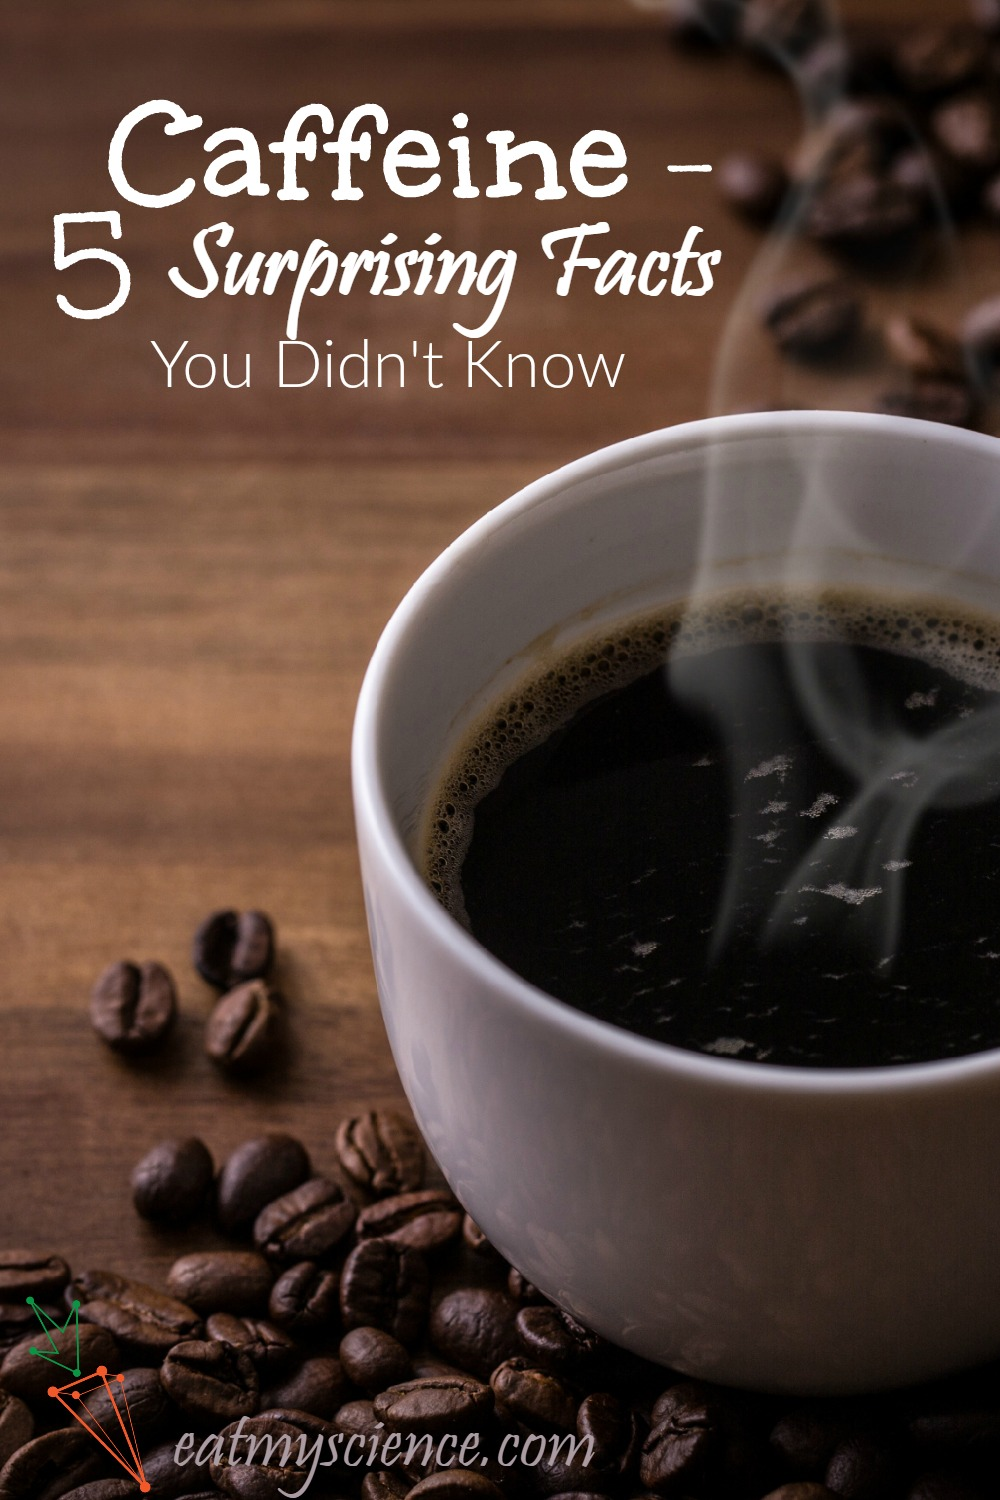 Caffeine is a drug - despite how many of us are addicted, there are a lot of things we don't know about it!